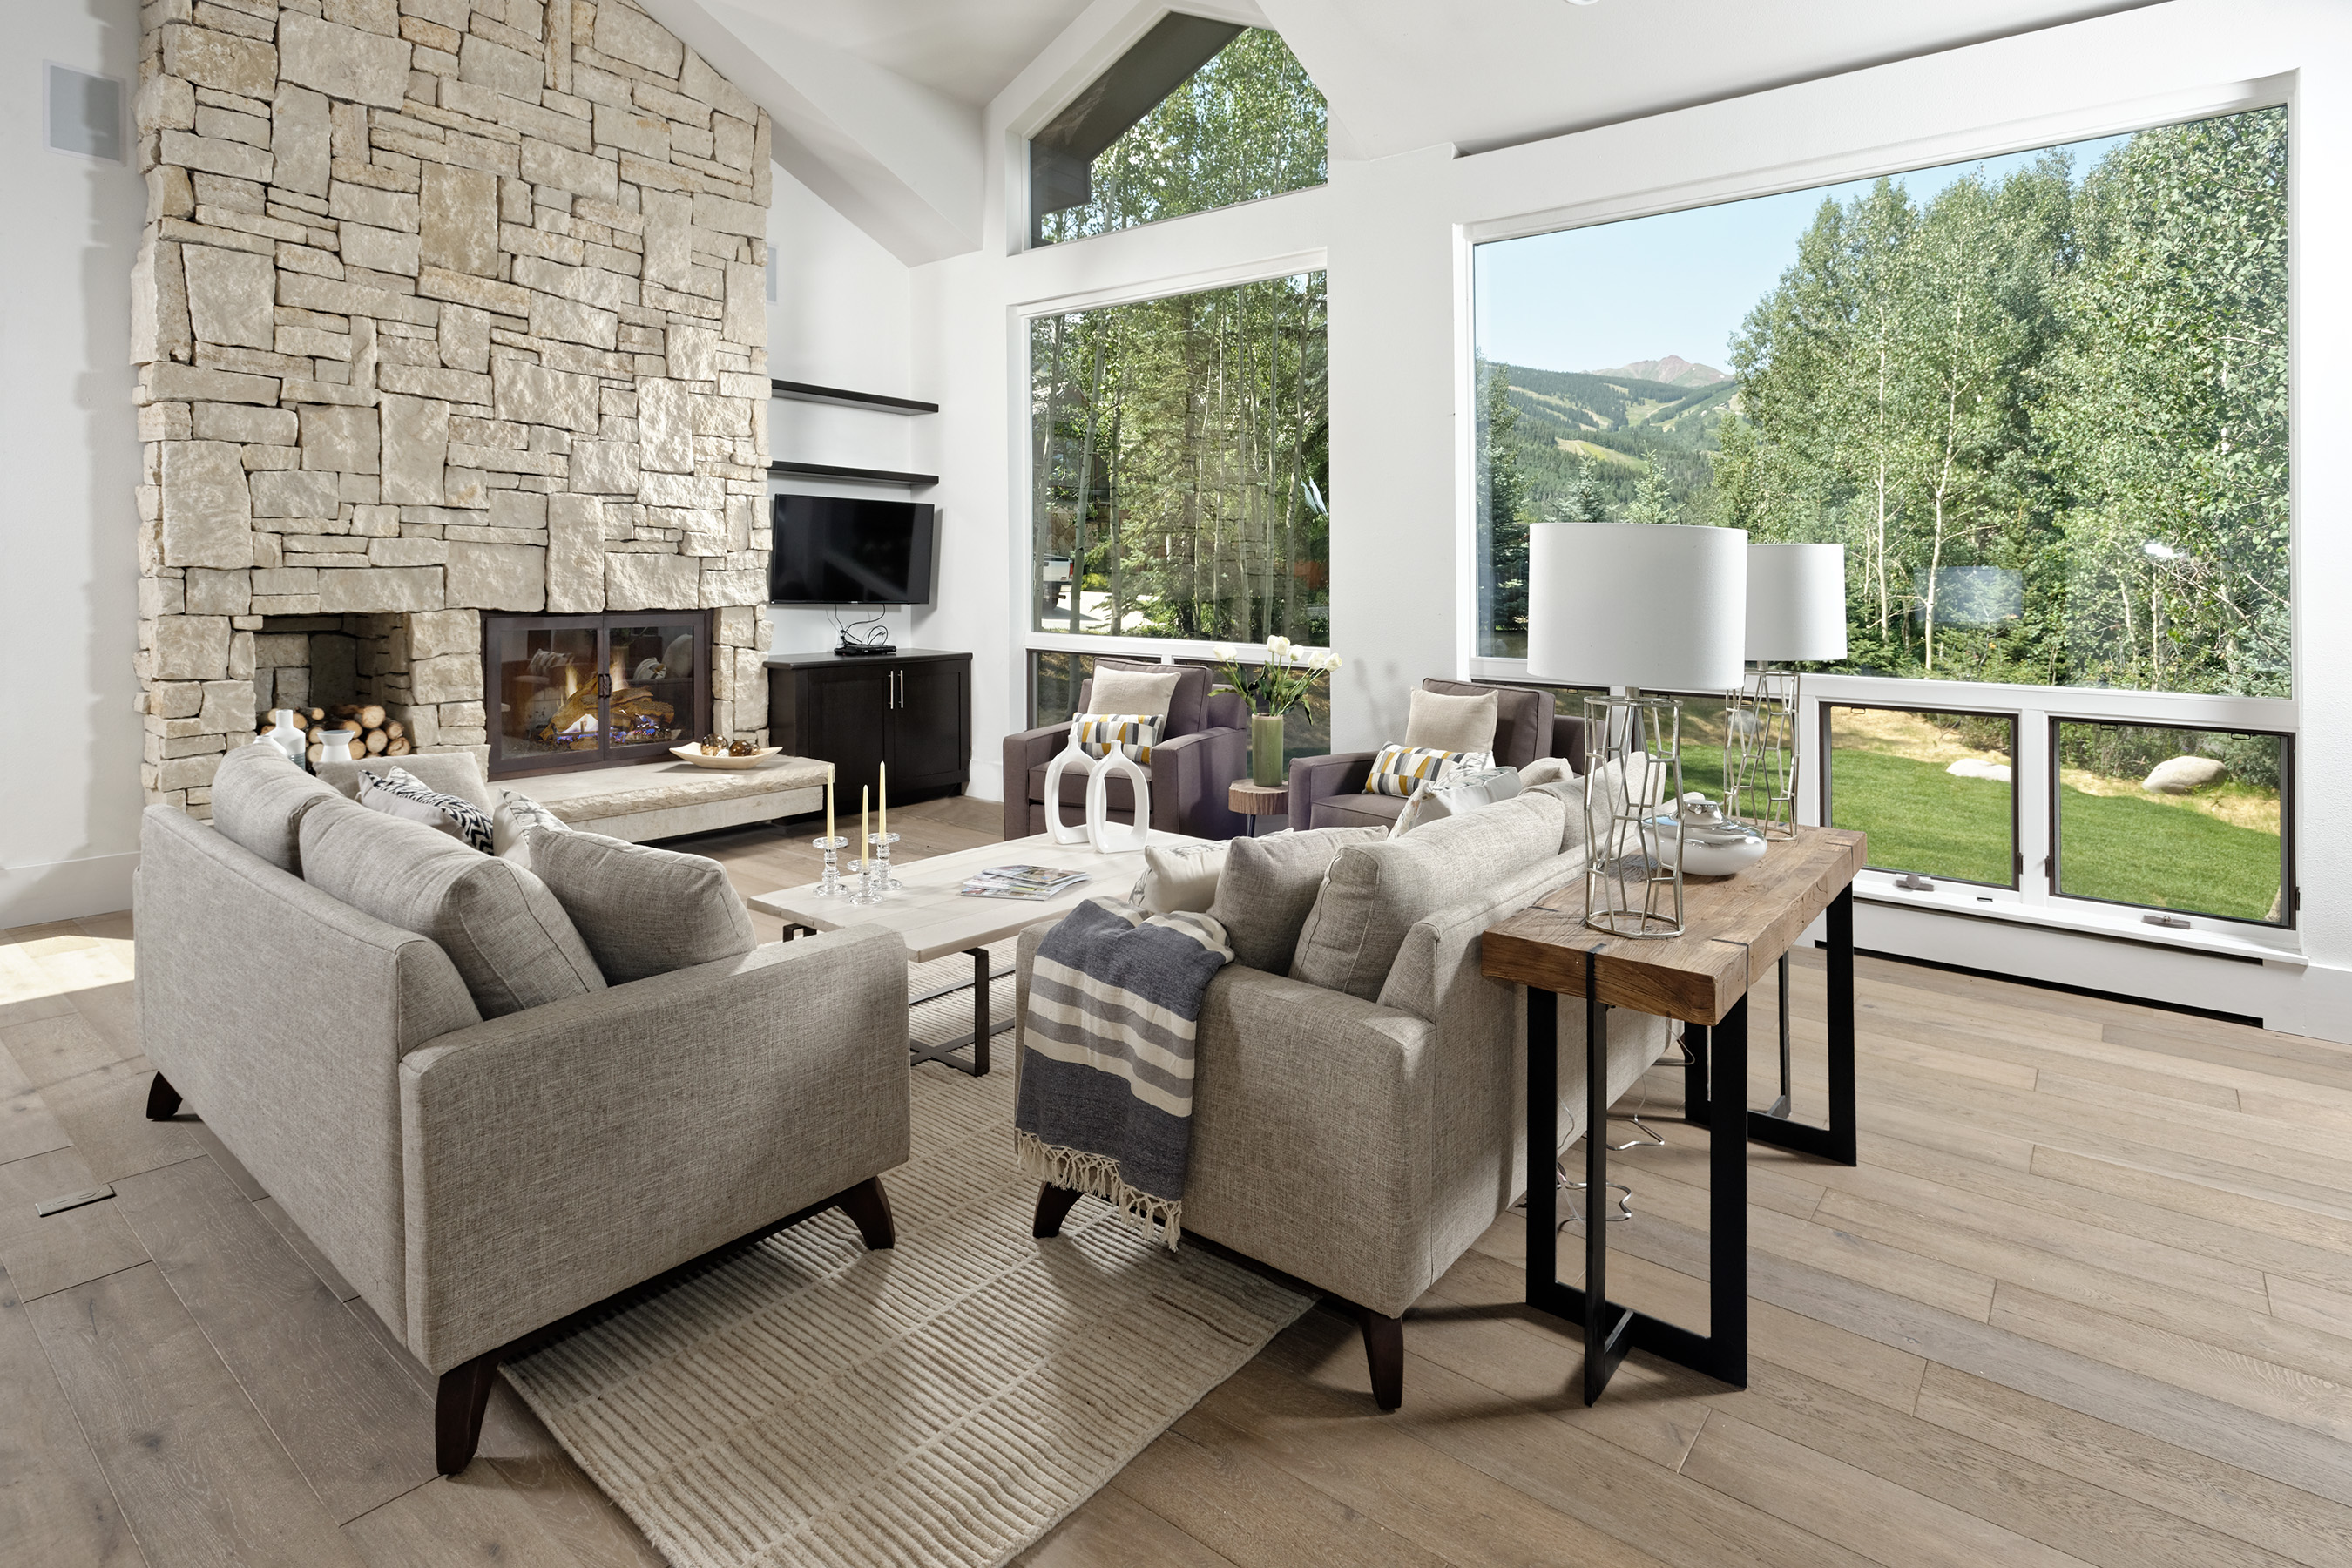 Villa per Vendita alle ore Ridge Run IV Lot 38 124 Baby Doe Lane Snowmass Village, Colorado, 81615 Stati Uniti